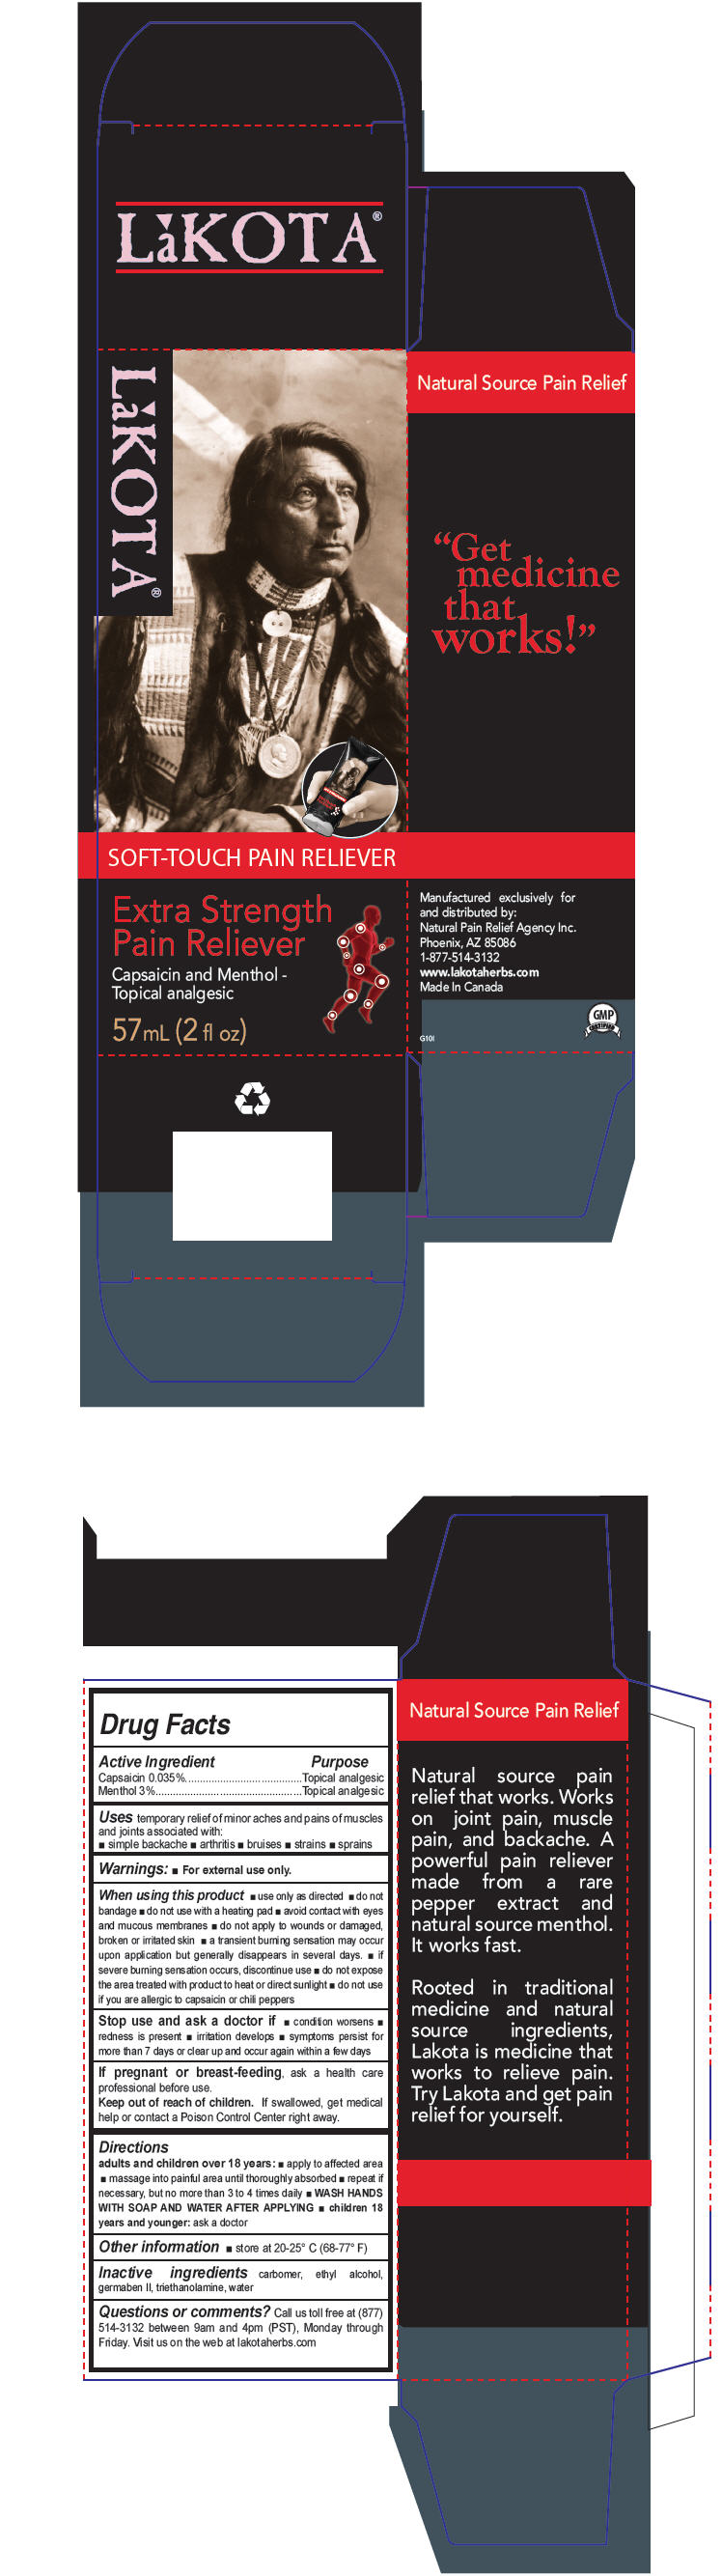 Extra Strength Pain Reliever (Capsaicin And Menthol, Unspecified Form) Cream [Hpi Health Products Inc.]